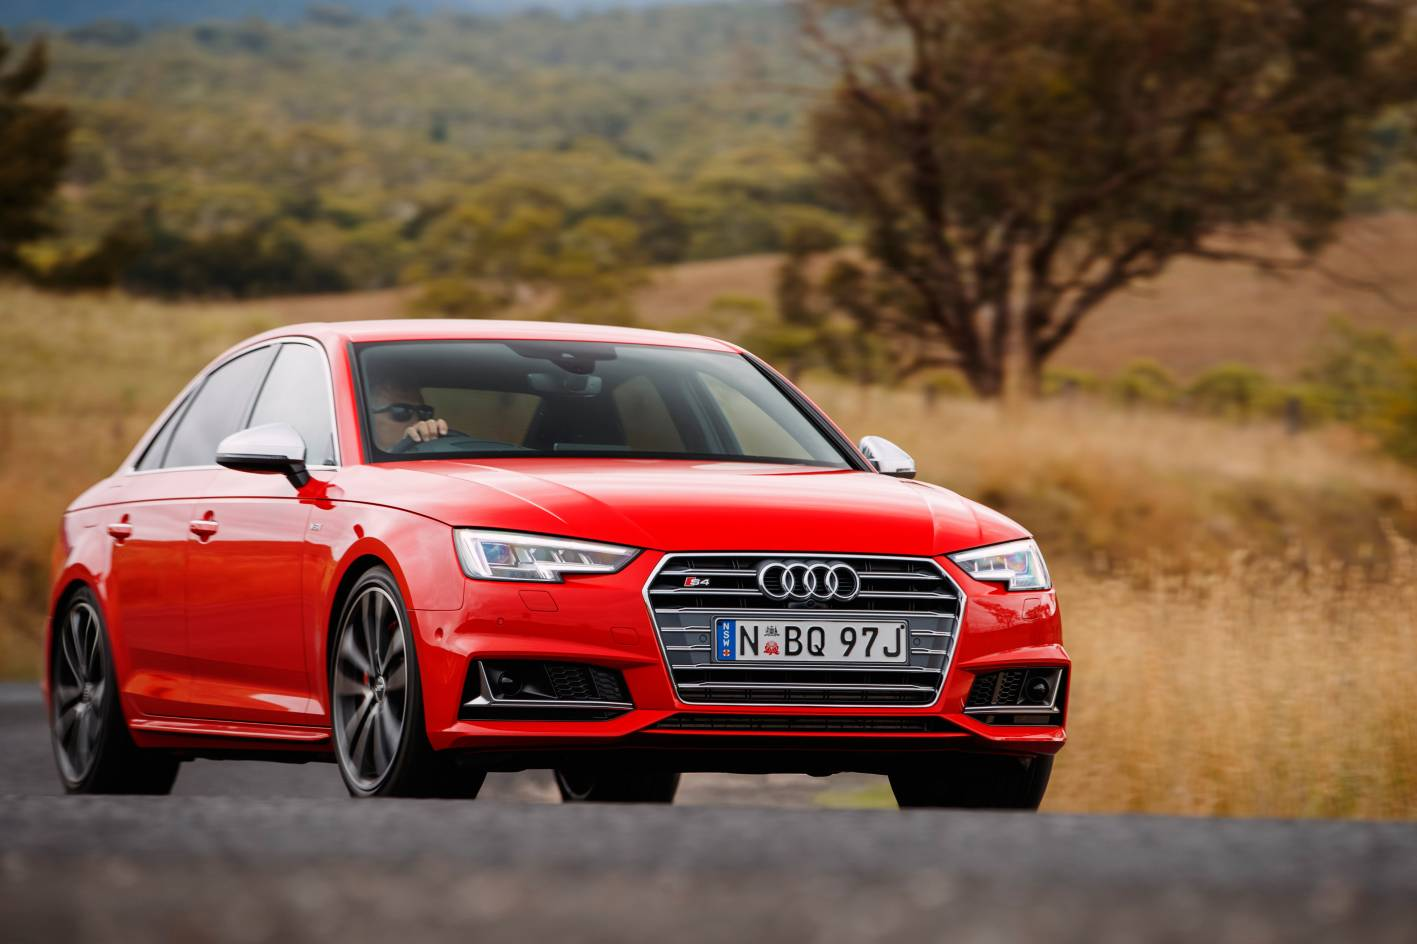 2017 audi s4 now on sale in australia from 99 900 performancedrive. Black Bedroom Furniture Sets. Home Design Ideas